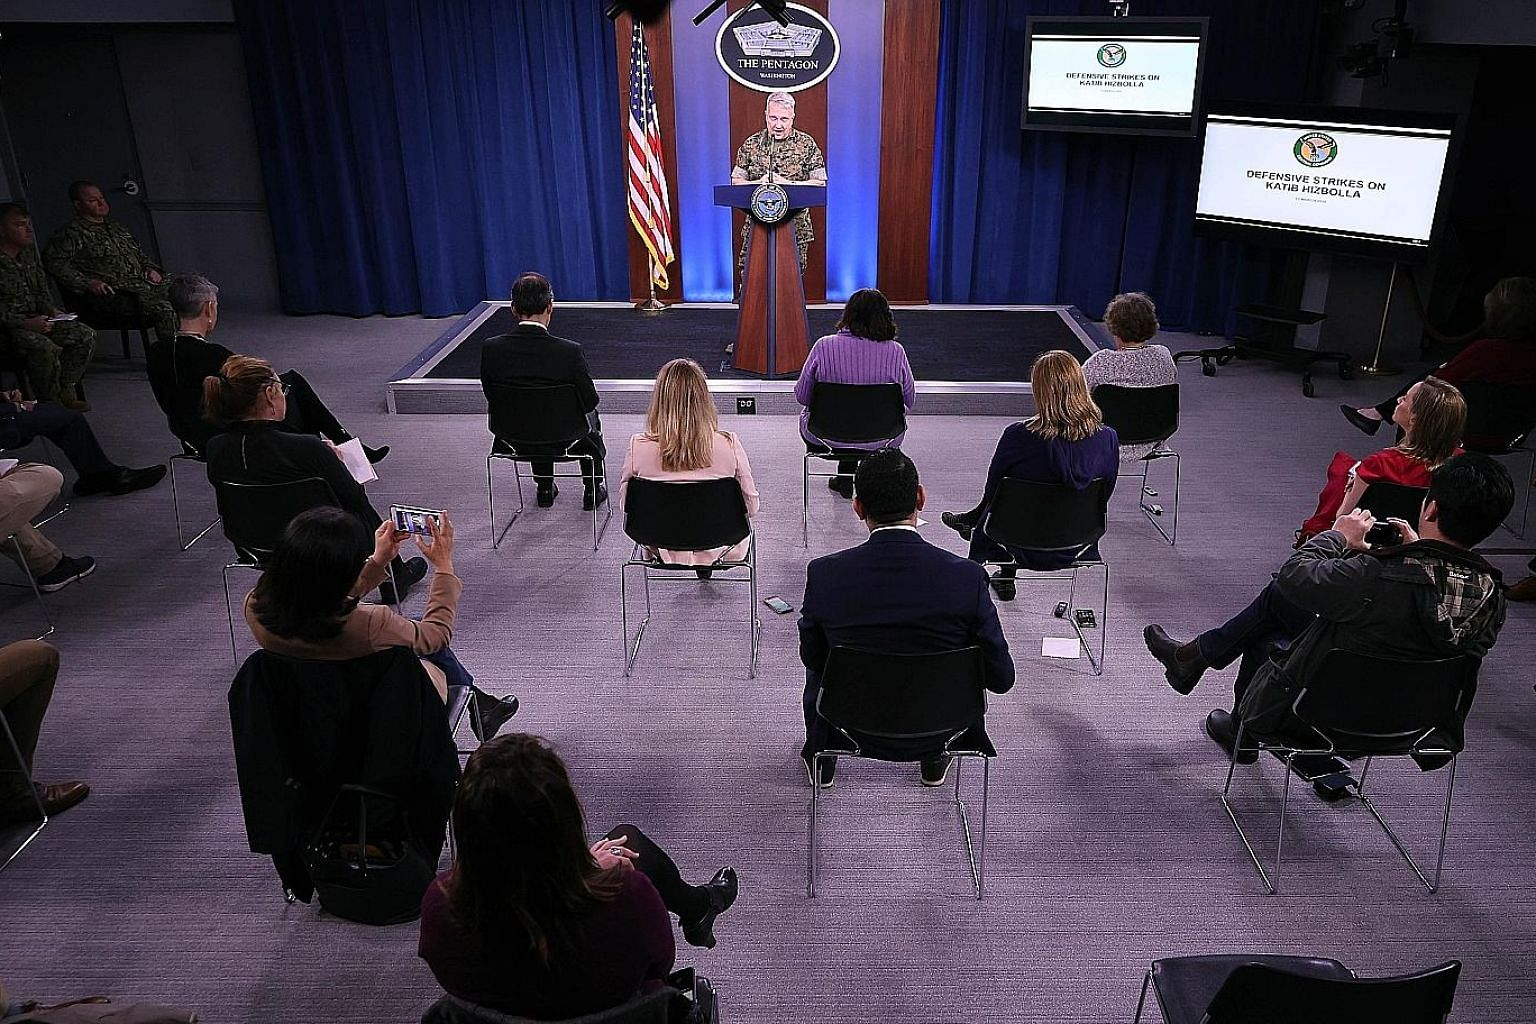 US Marine Corps General Kenneth McKenzie speaking during a news briefing at the Pentagon last Friday. In an example of exercising social distancing to keep the threat of Covid-19 transmission at bay, reporters' chairs were placed a metre apart from o